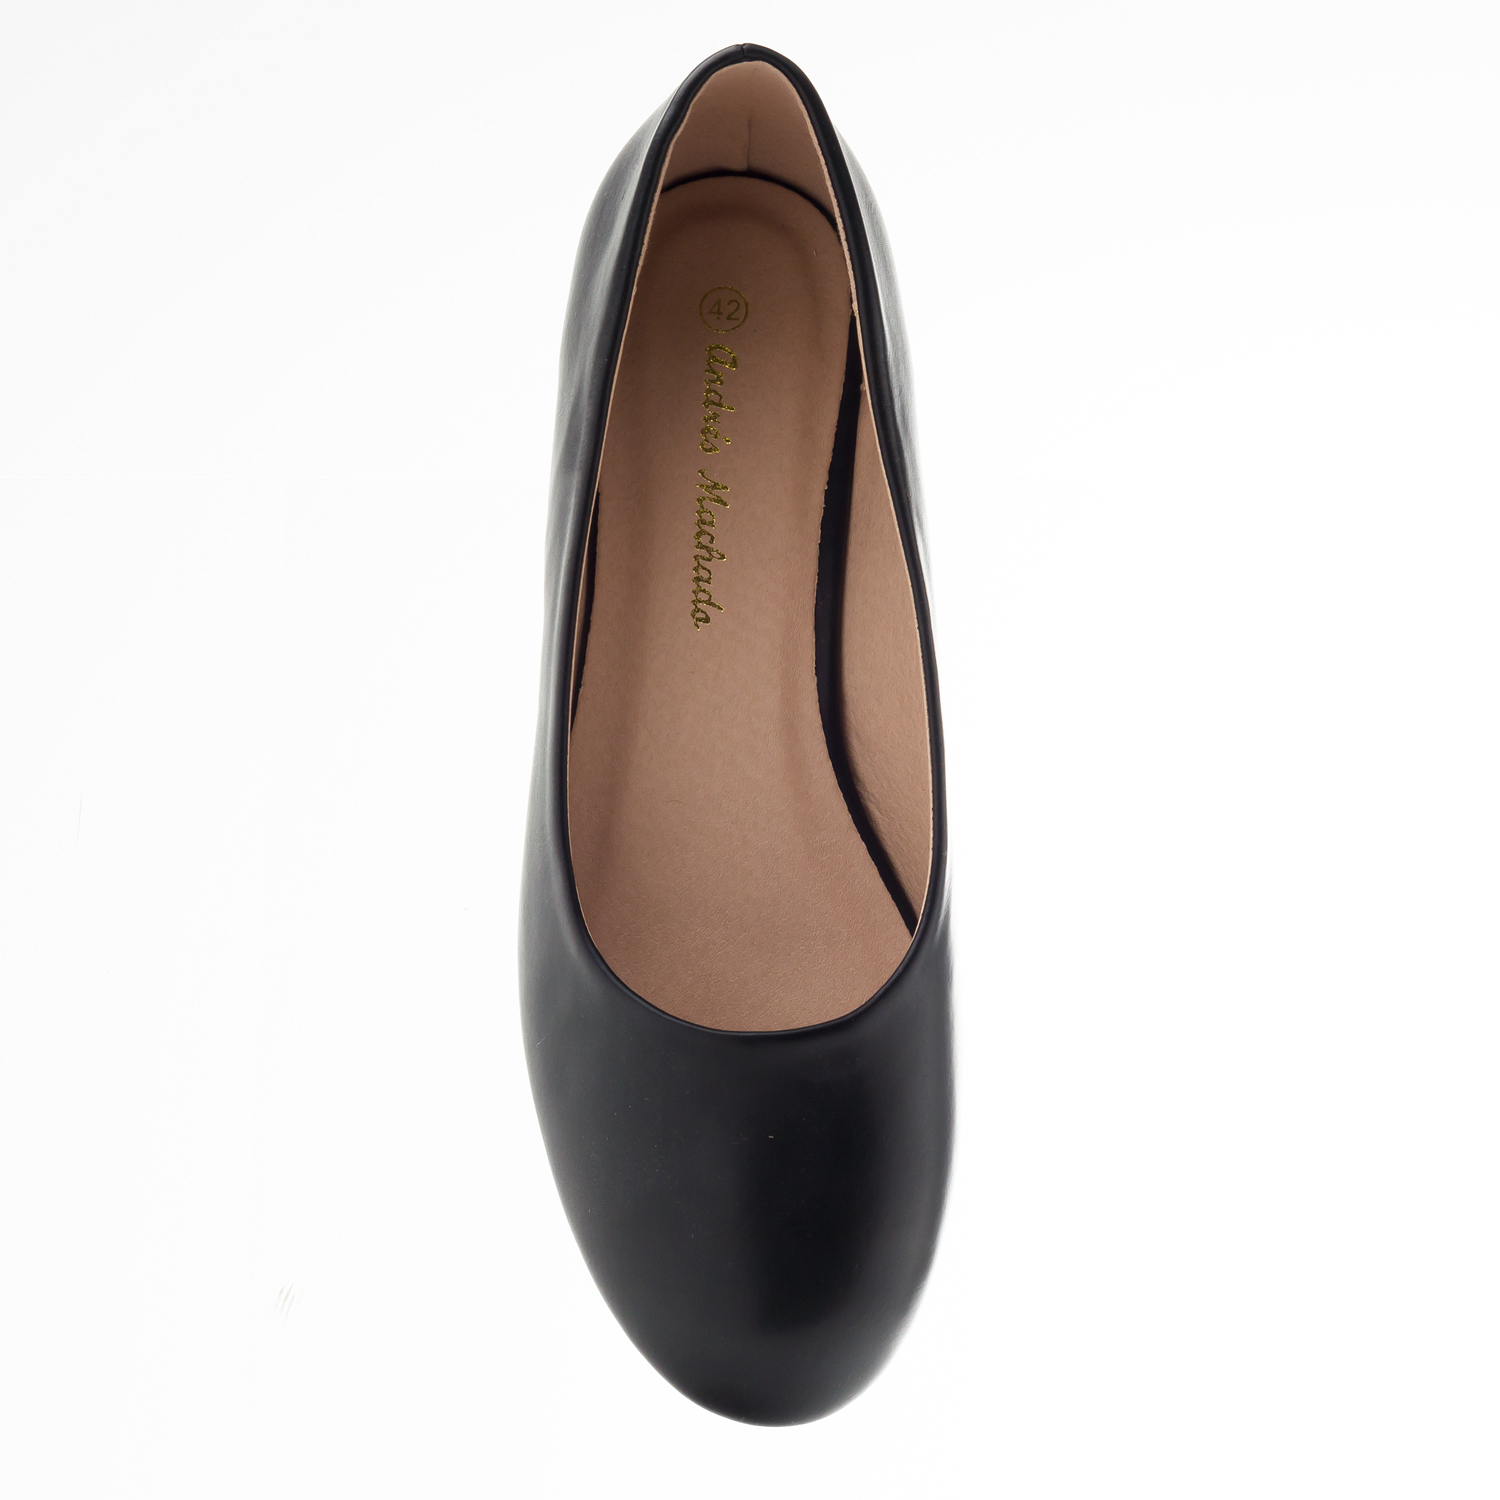 Plain Ballet Flats in Black faux Leather